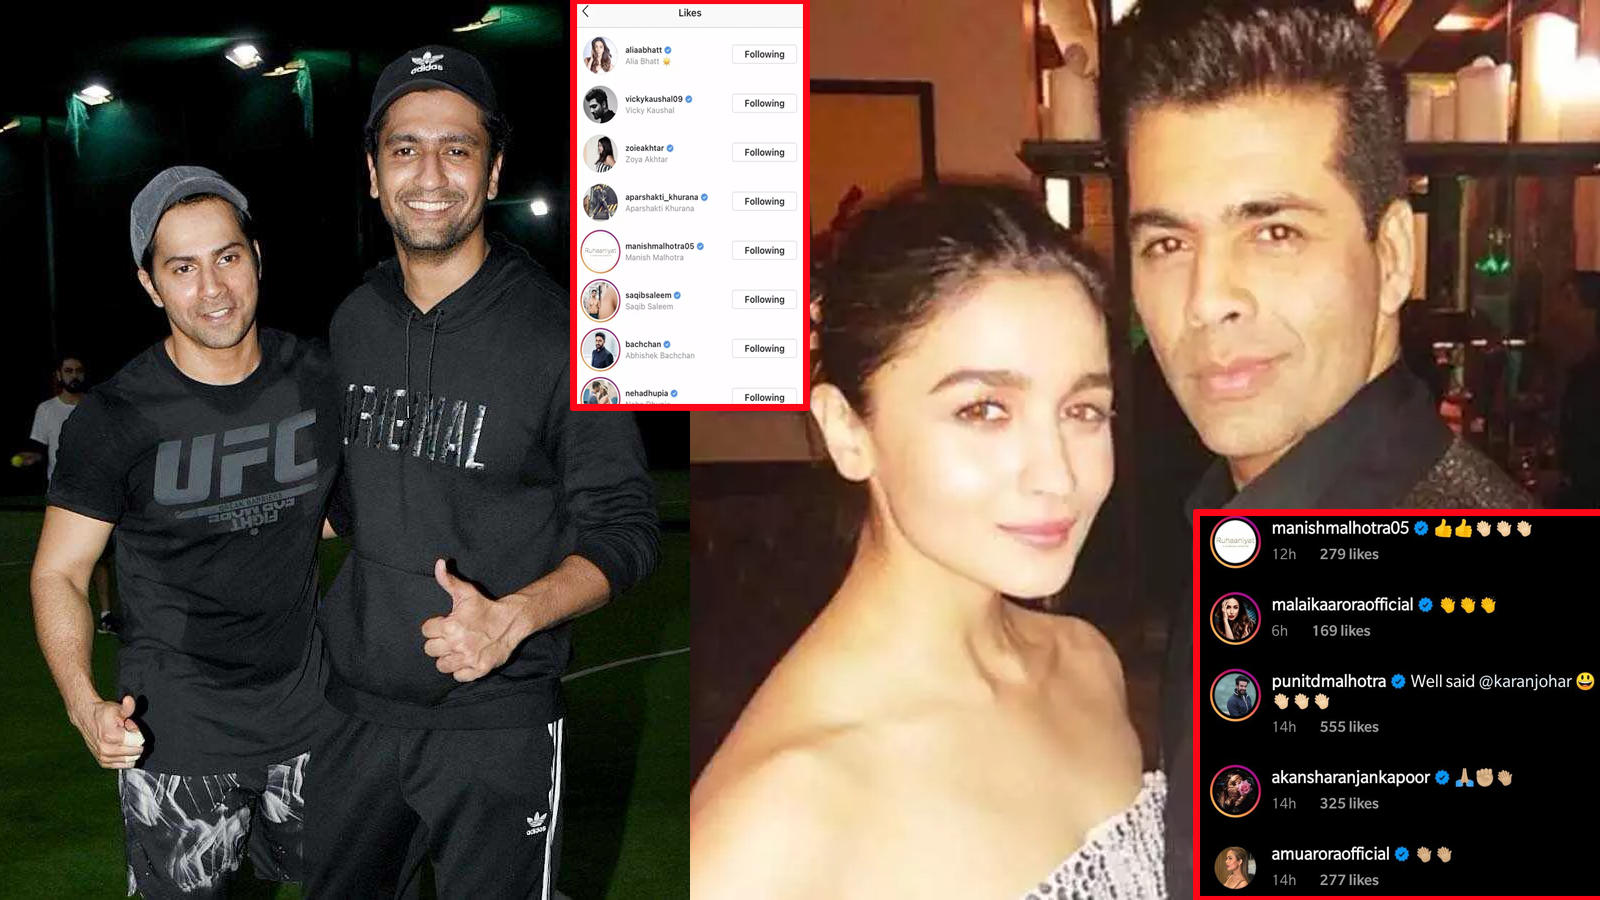 karan-johar-gets-support-from-alia-bhatt-vicky-kaushal-varun-dhawan-malaika-arora-and-others-after-he-issues-statement-on-alleged-drug-connection